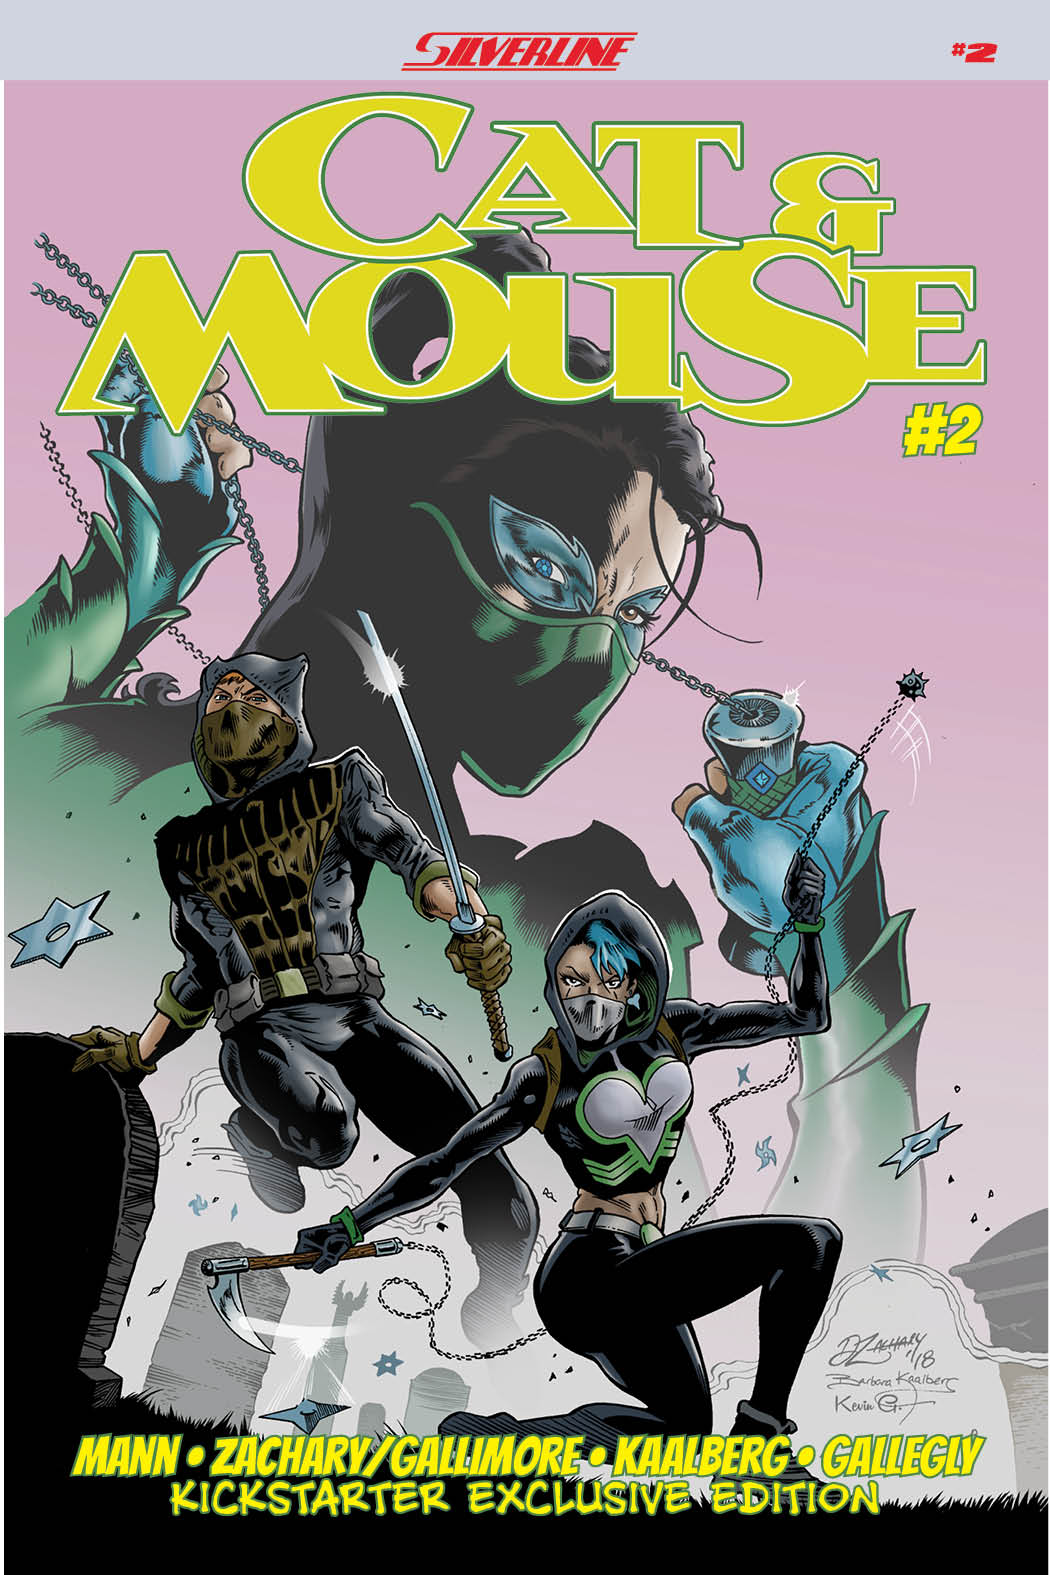 Silverline takes on human trafficking in Cat & Mouse #2 – First Comics News